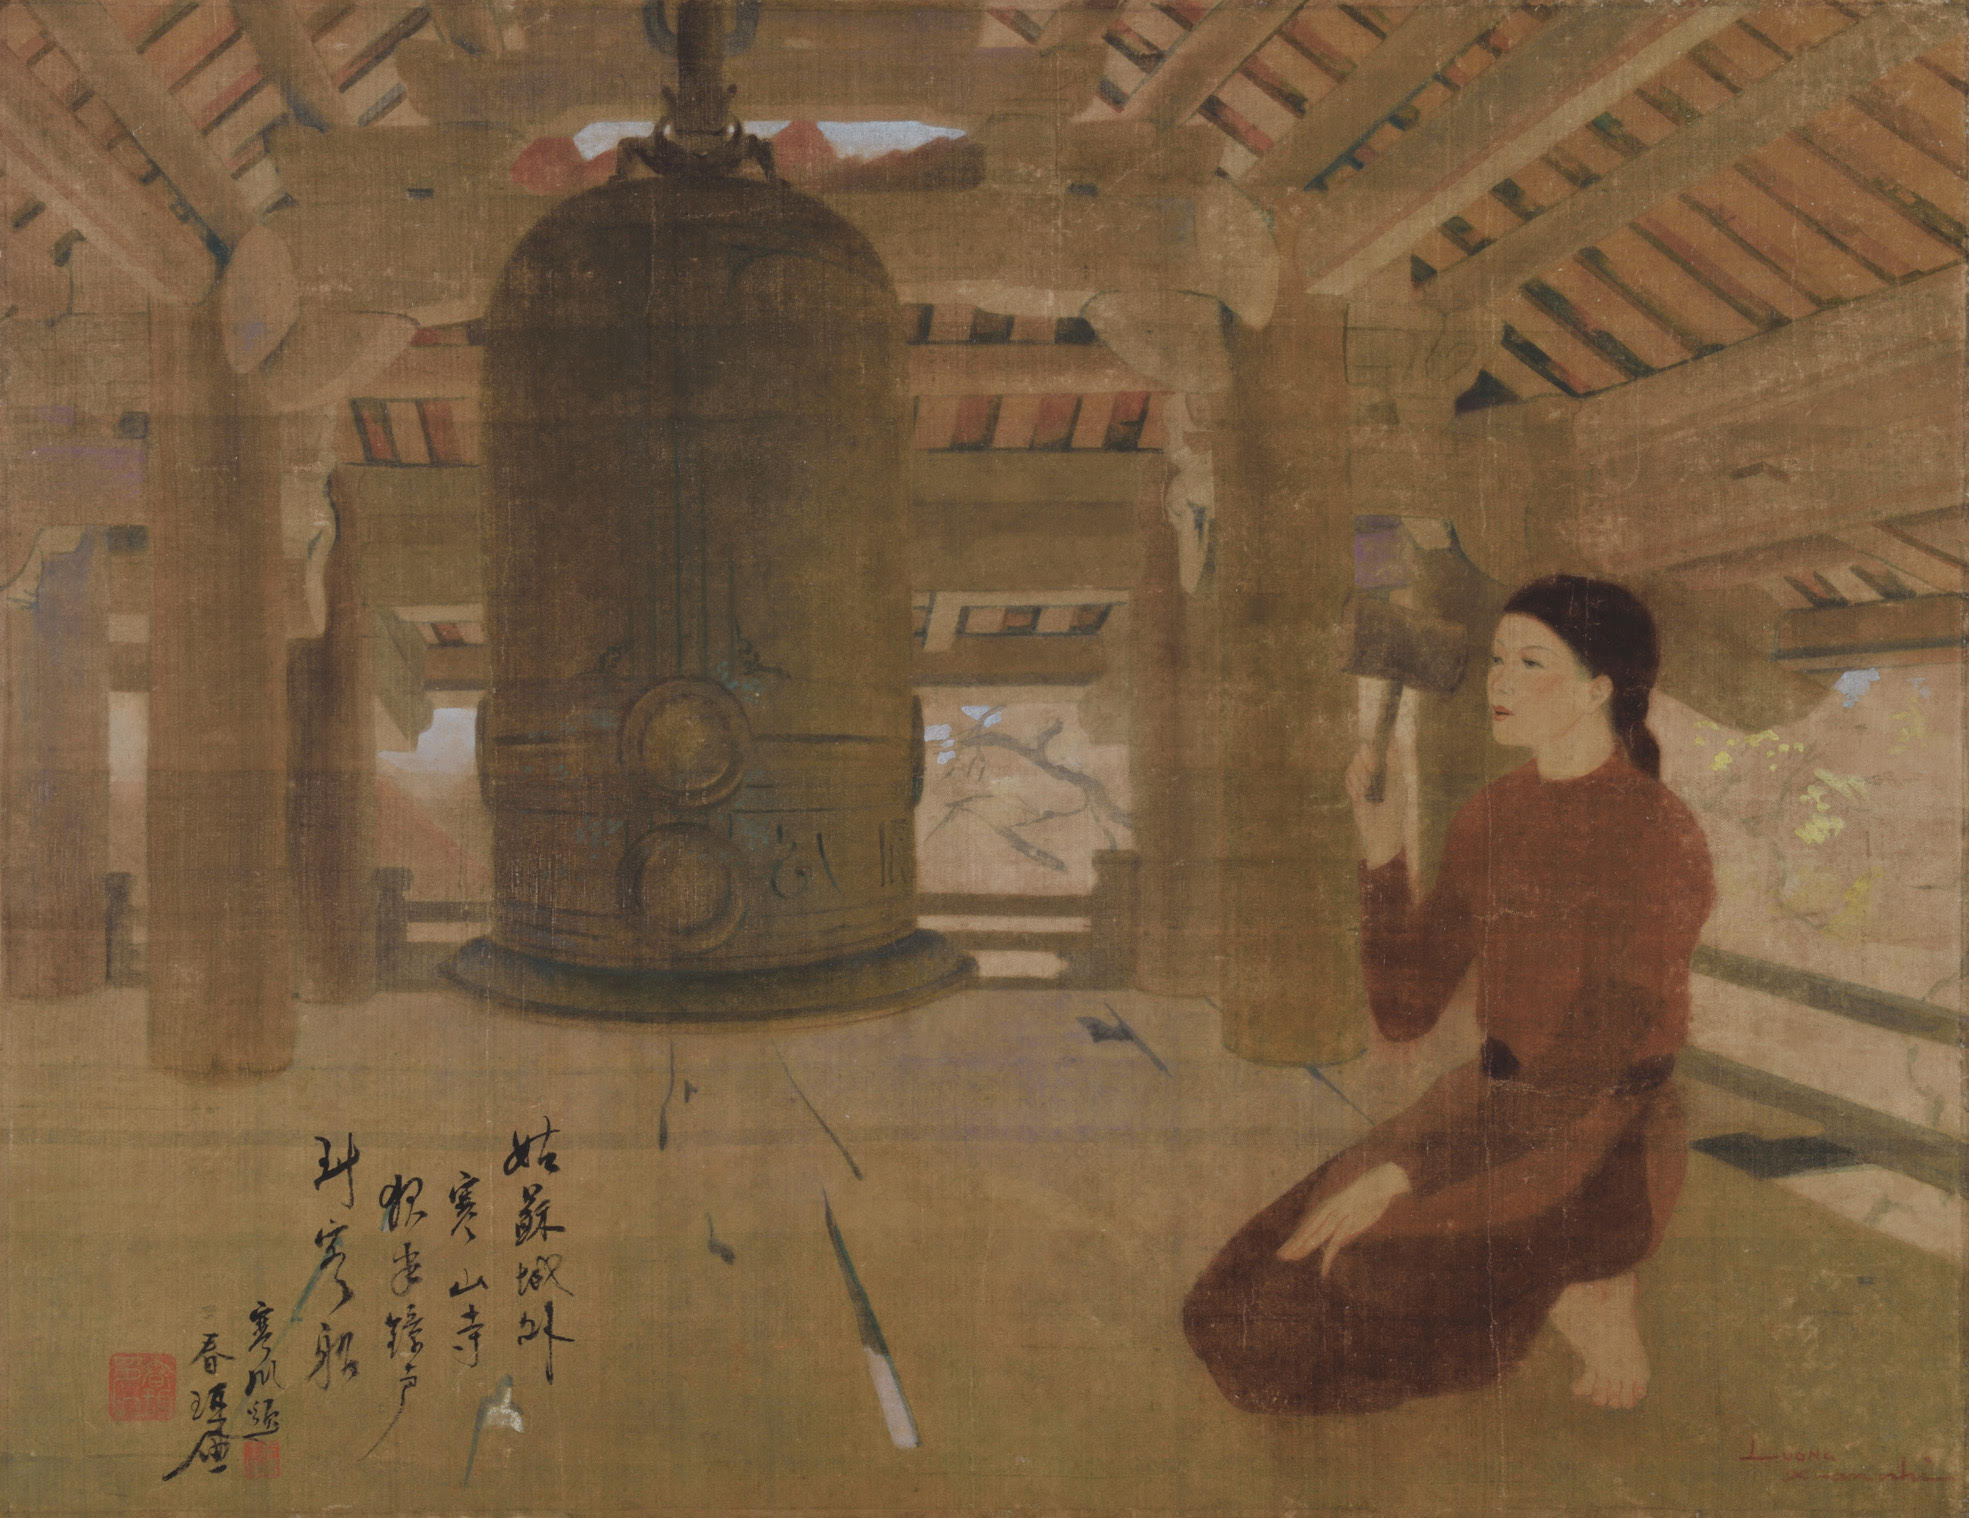 Luong Xuan Nhi, Late Afternoon Chimes, ink and gouache on silk, 45.5 x 59 cm, 1940